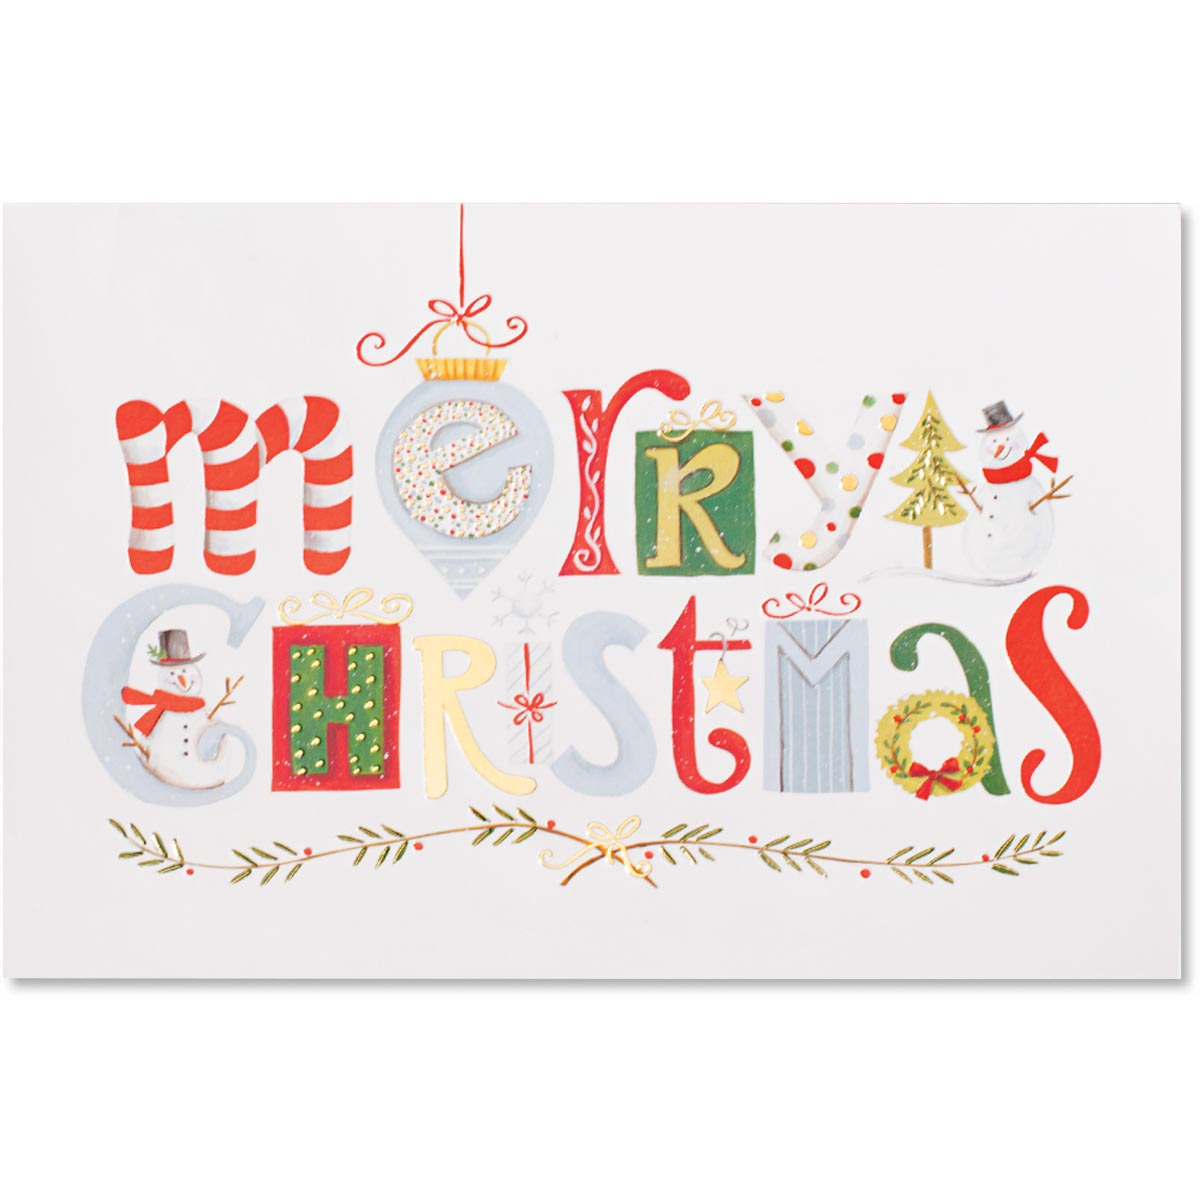 Merry Christmas Elements Boxed Holiday Greeting Cards Paperdirects